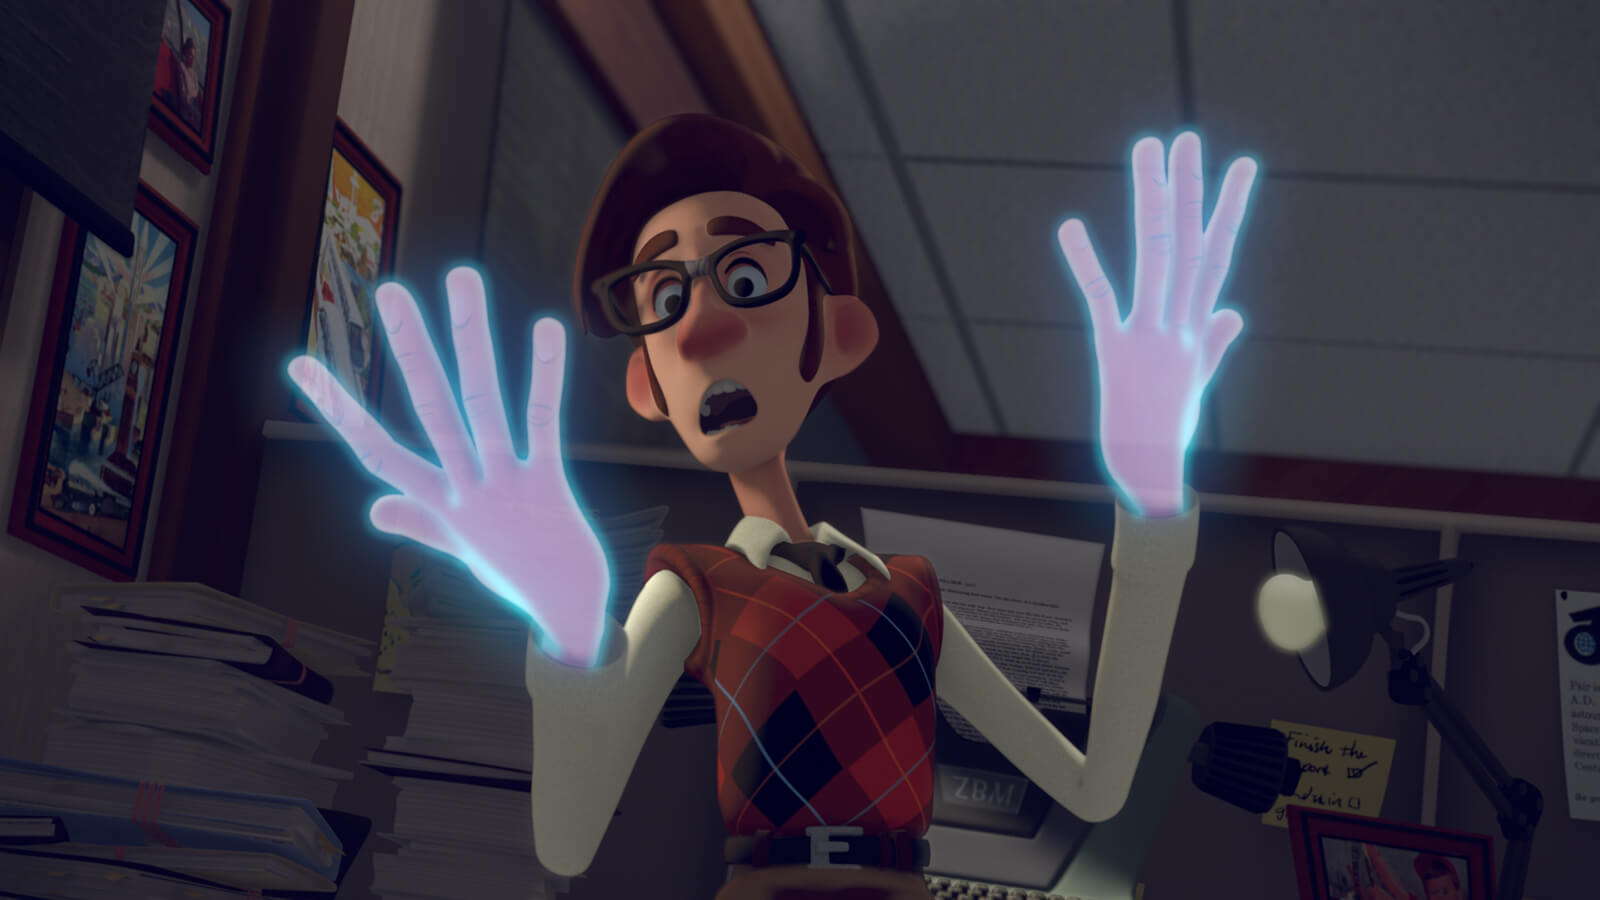 A man in glasses and a red argyle sweater looks in horror at his hands, which are translucent and glowing blue.